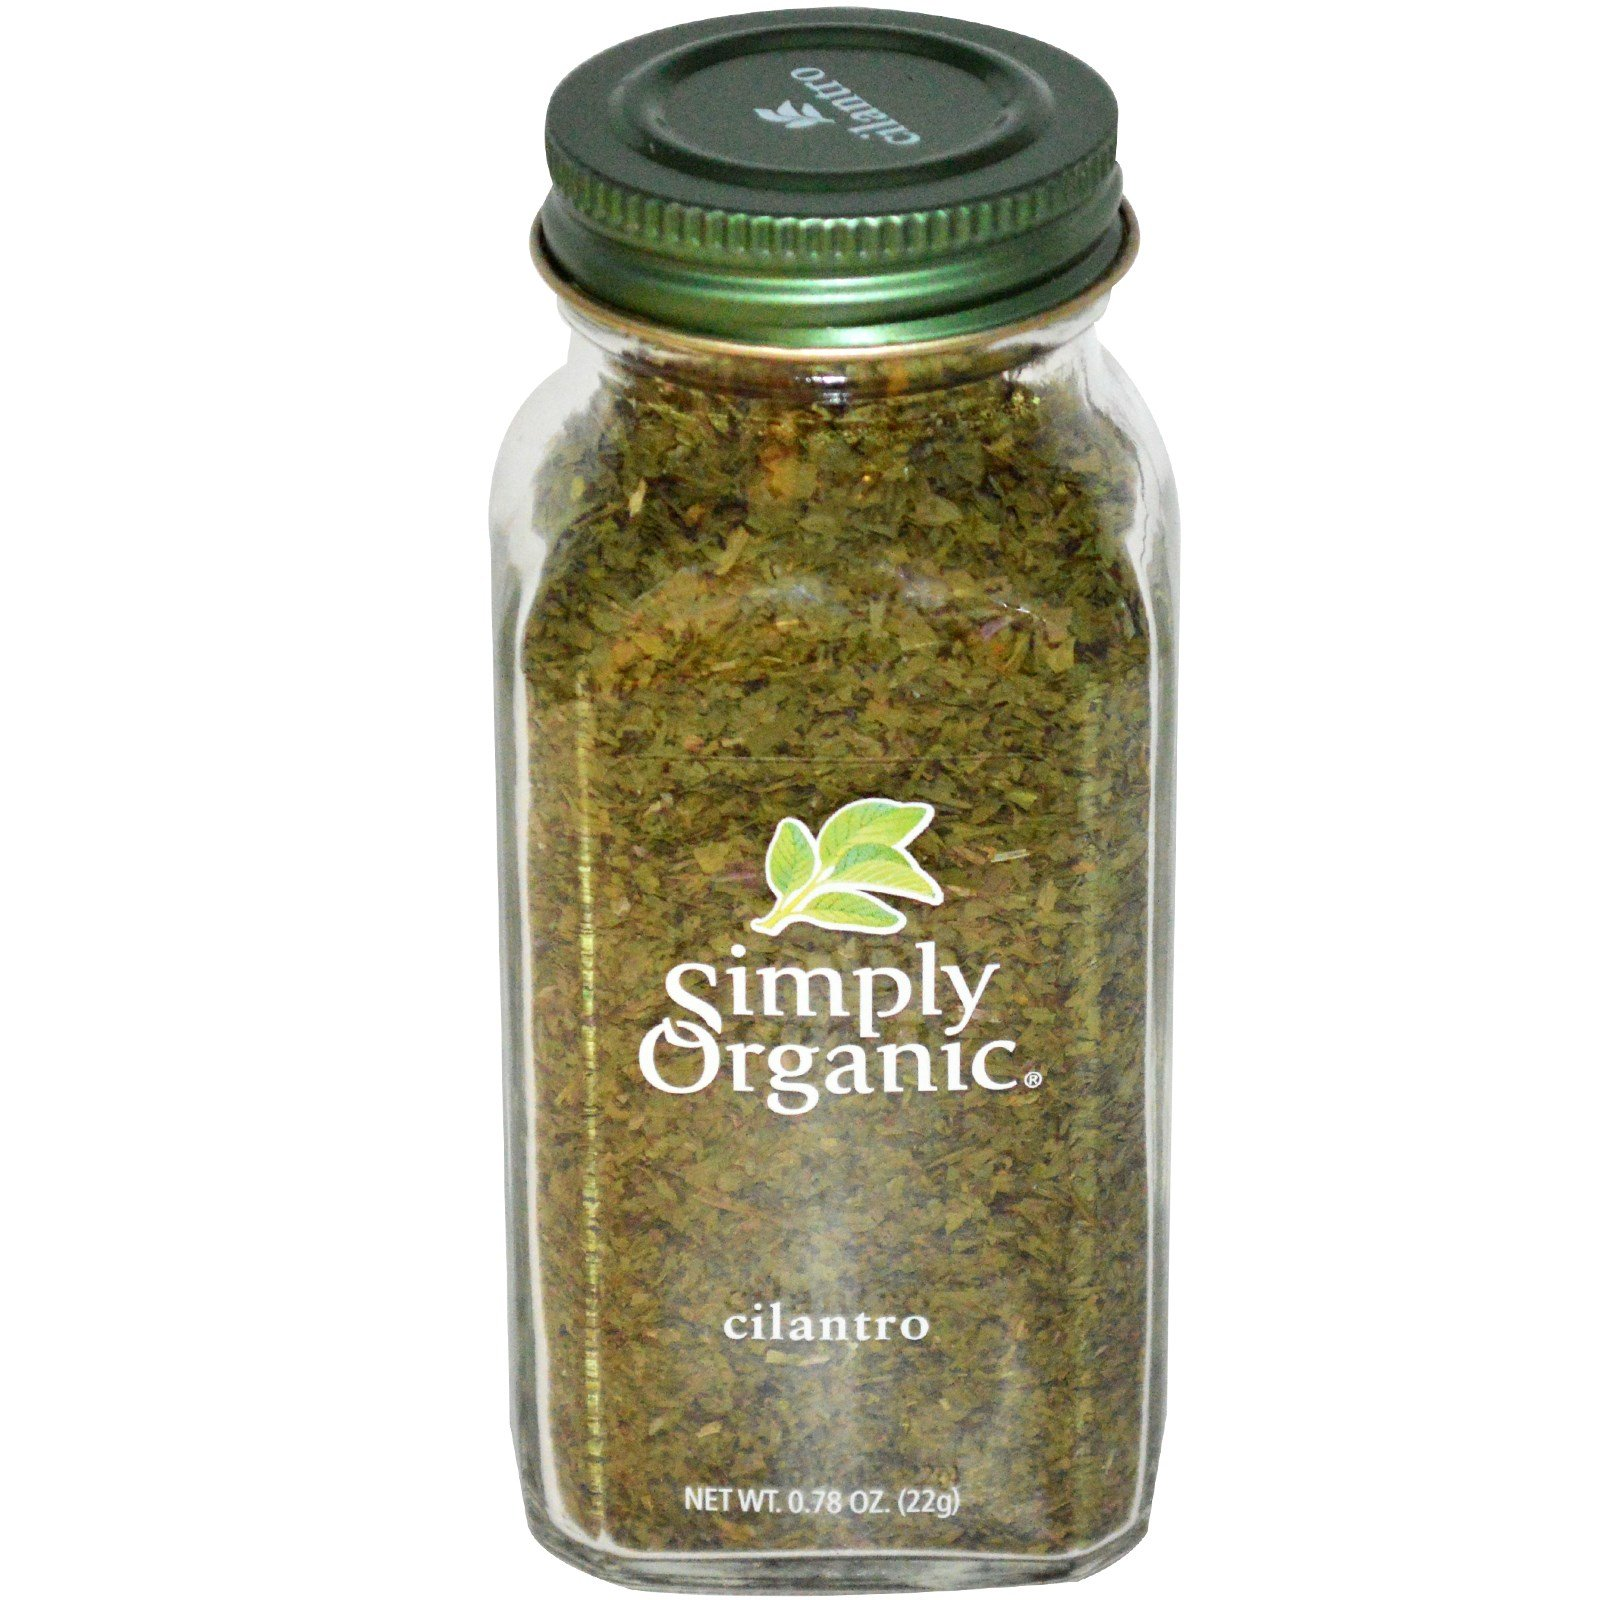 Simply Organic, Cilantro, 0.78 oz(Pack of 3) by SIMPLY ORGANIC (Image #1)